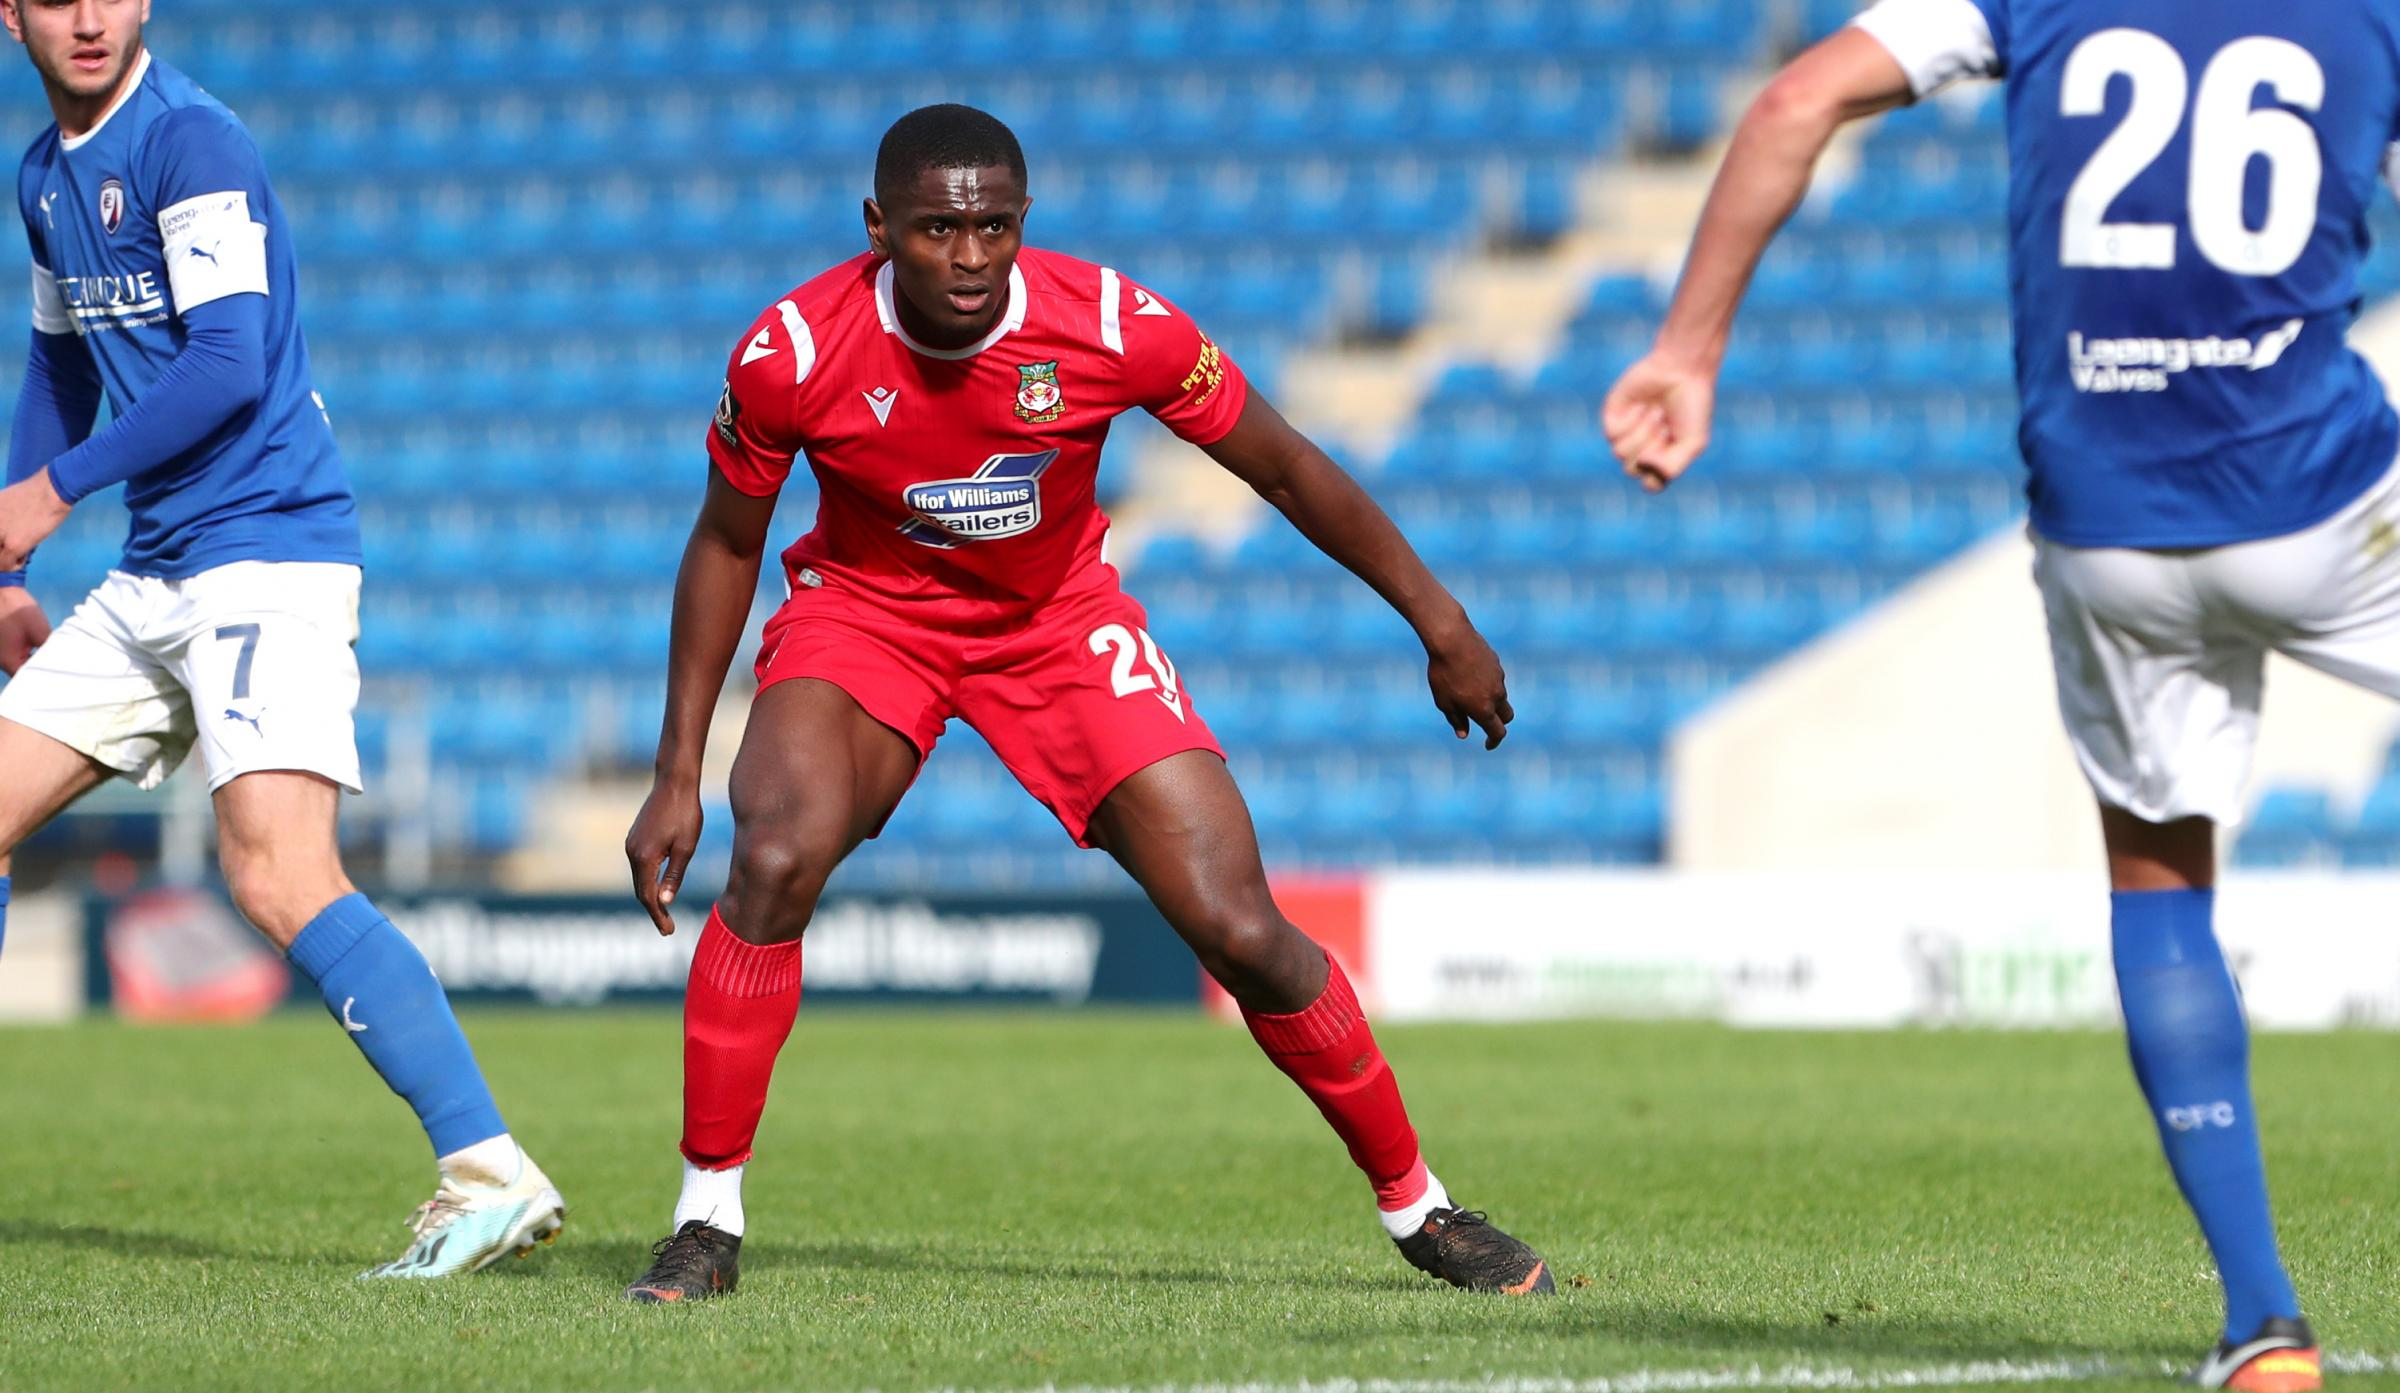 Midfielder Akil Wright says Wrexham AFC have to build on Eastleigh win in fight against relegation